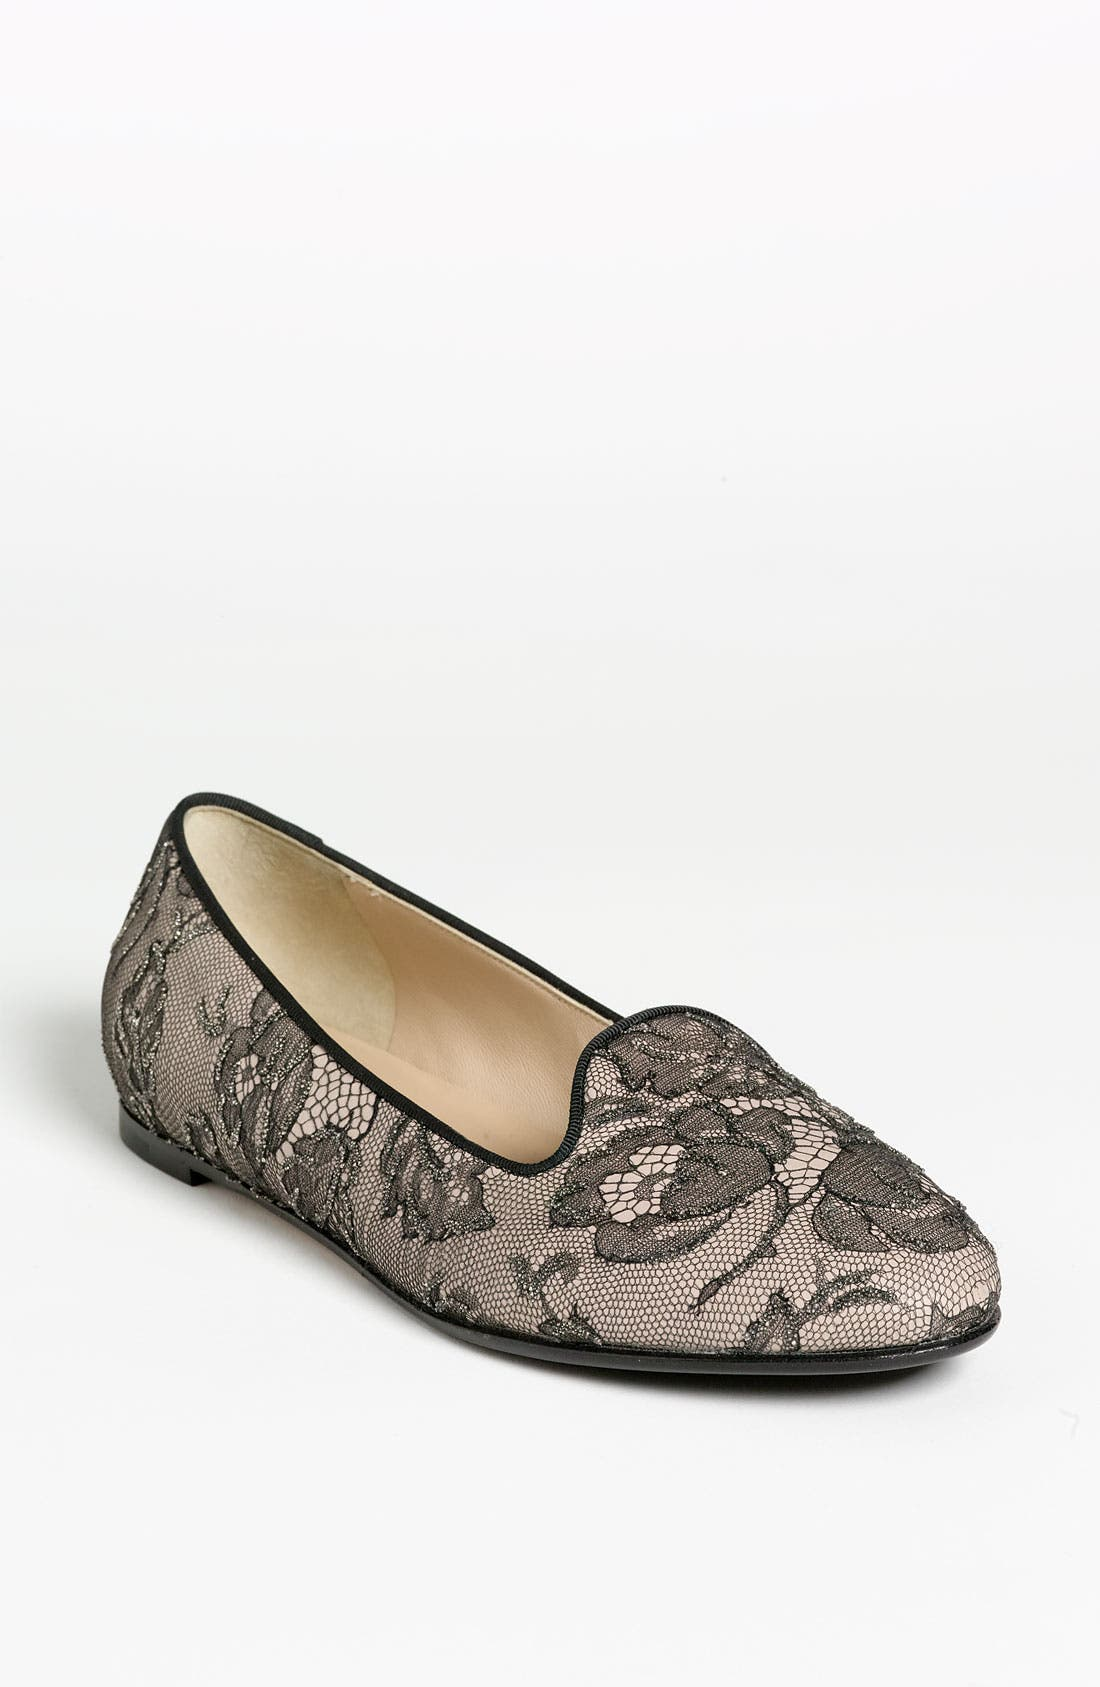 Alternate Image 1 Selected - Valentino 'Lace Art' Slipper